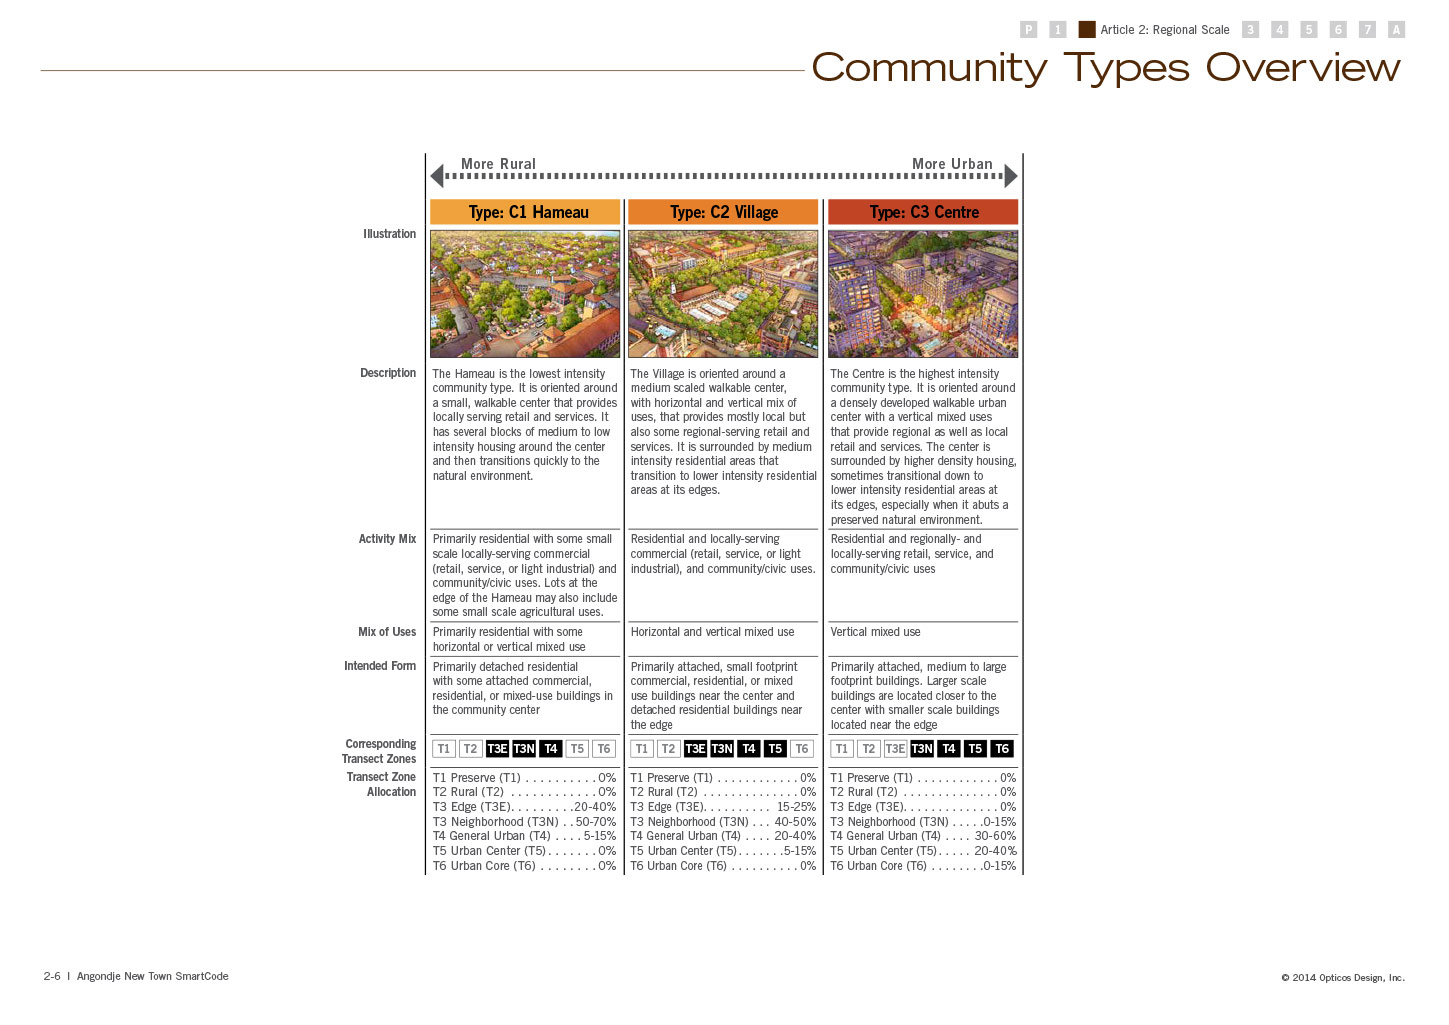 Community Types Overview, showing an overview of the three community types